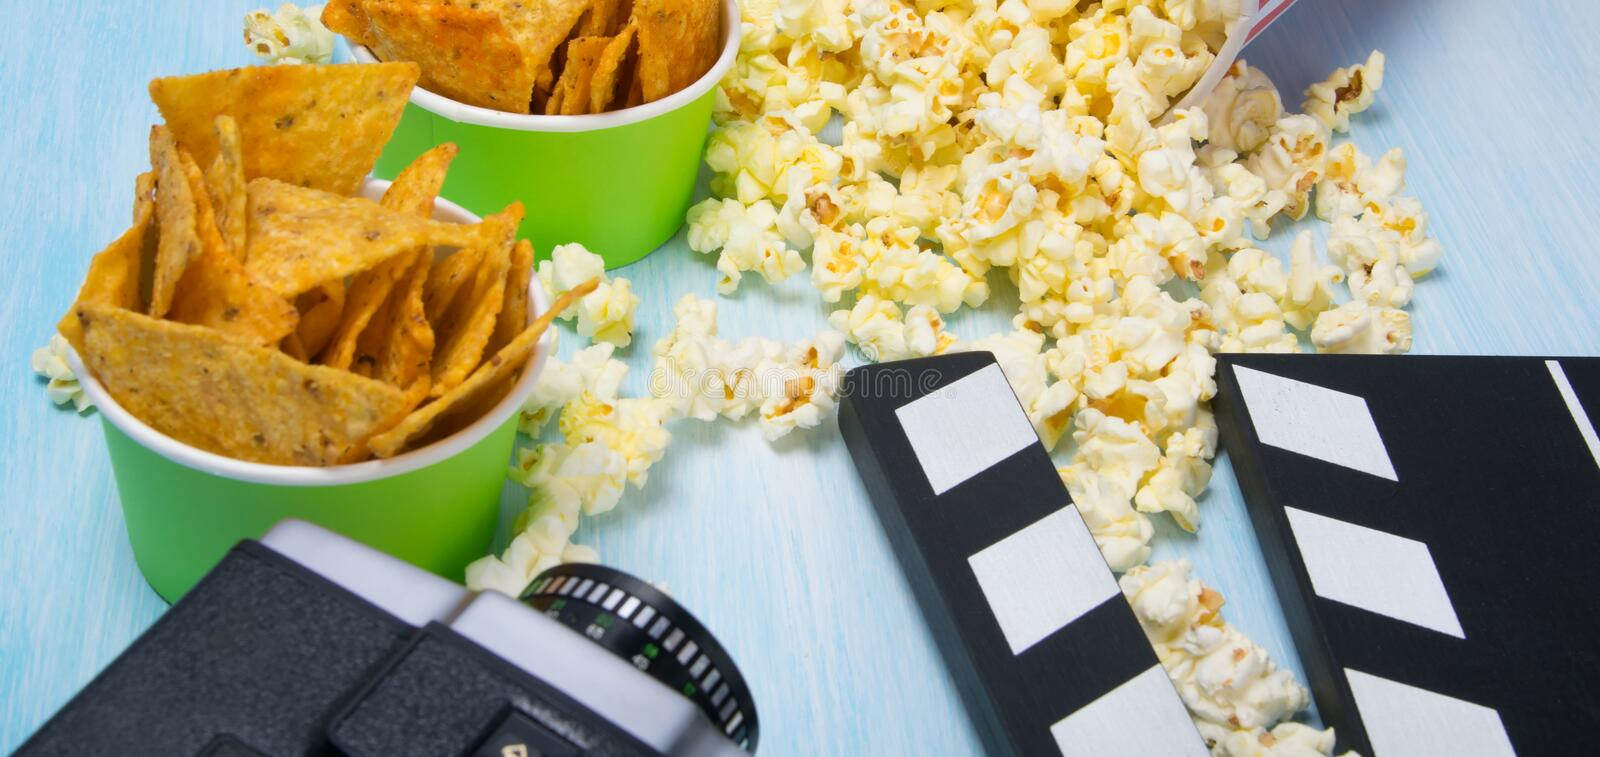 Scattered popcorn, on a blue background, next to an old video camera, a double for recording information and a bucket of delicious royalty free stock photography